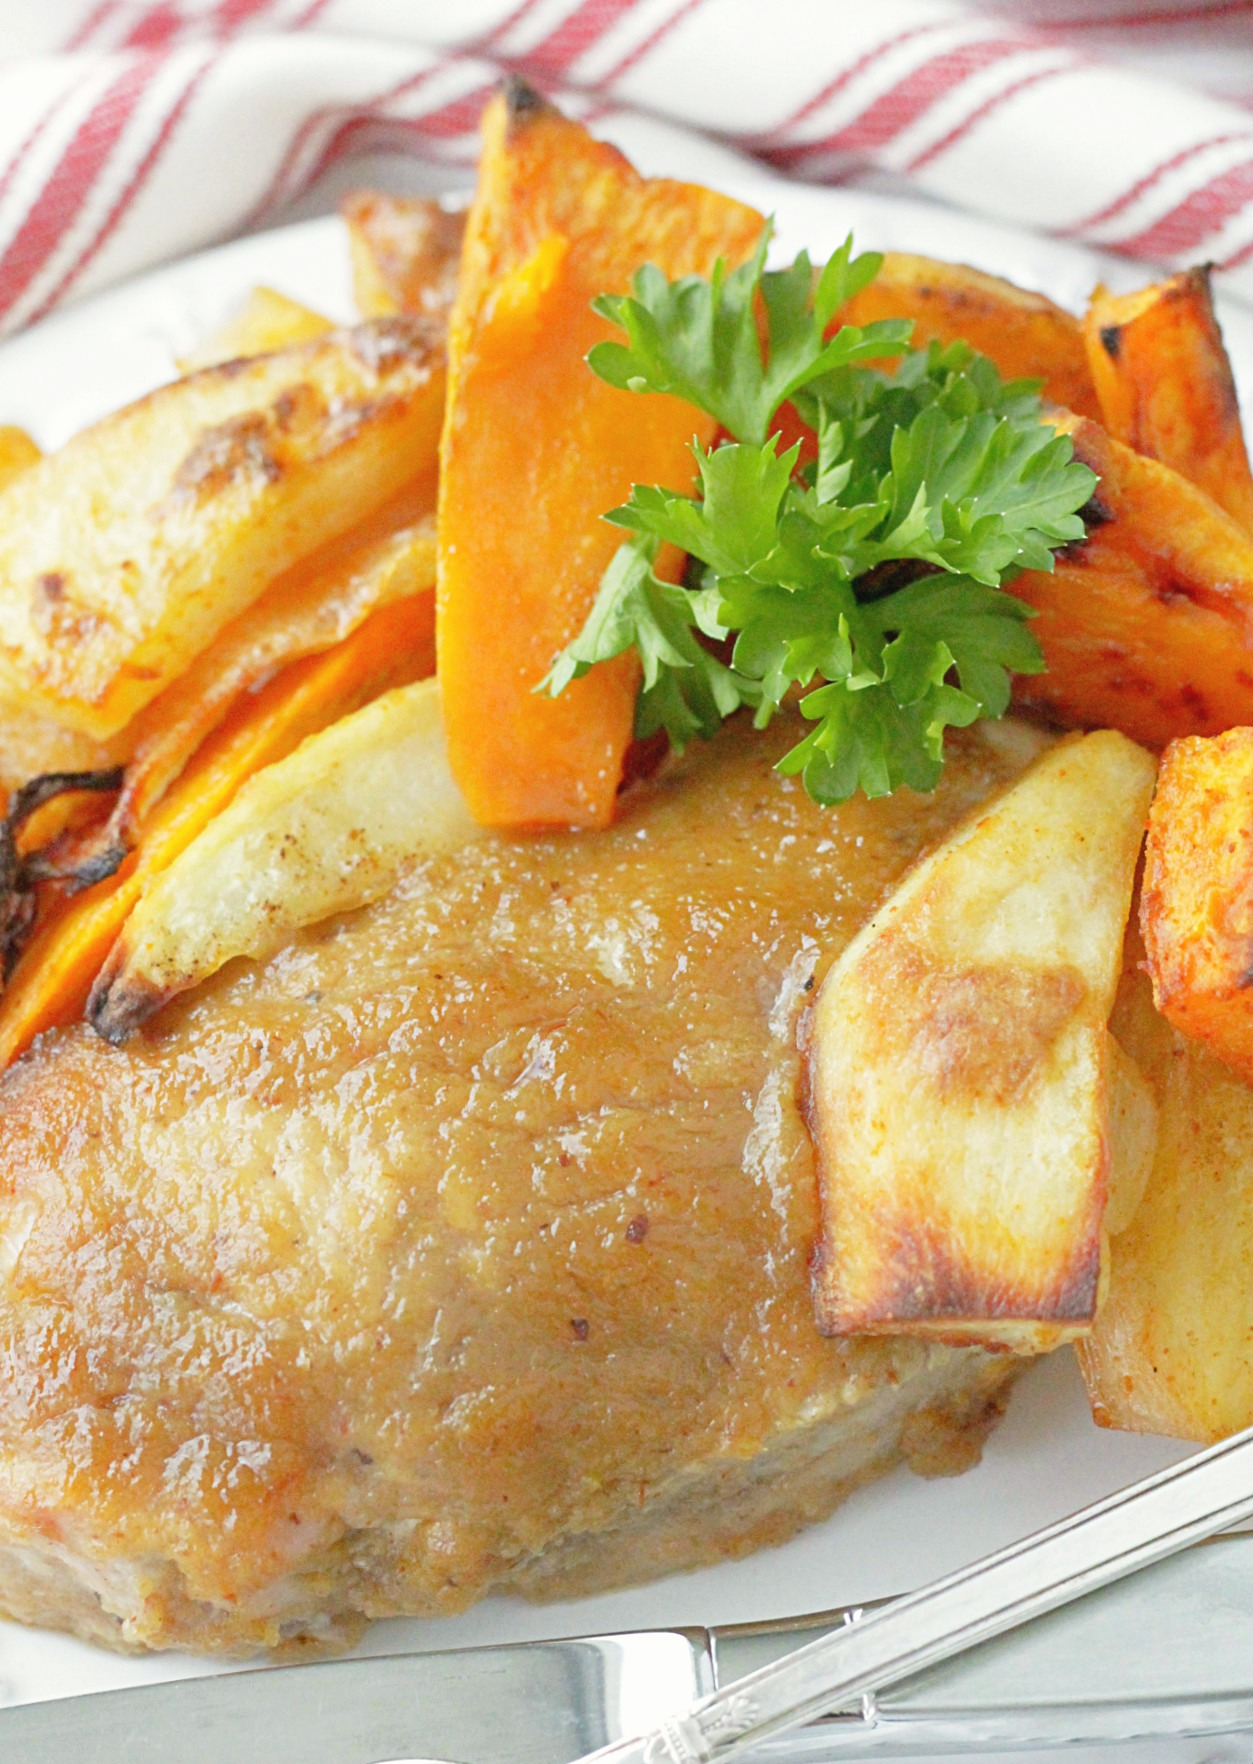 close up of applesauce baked pork chop on a plate with roasted potatoes